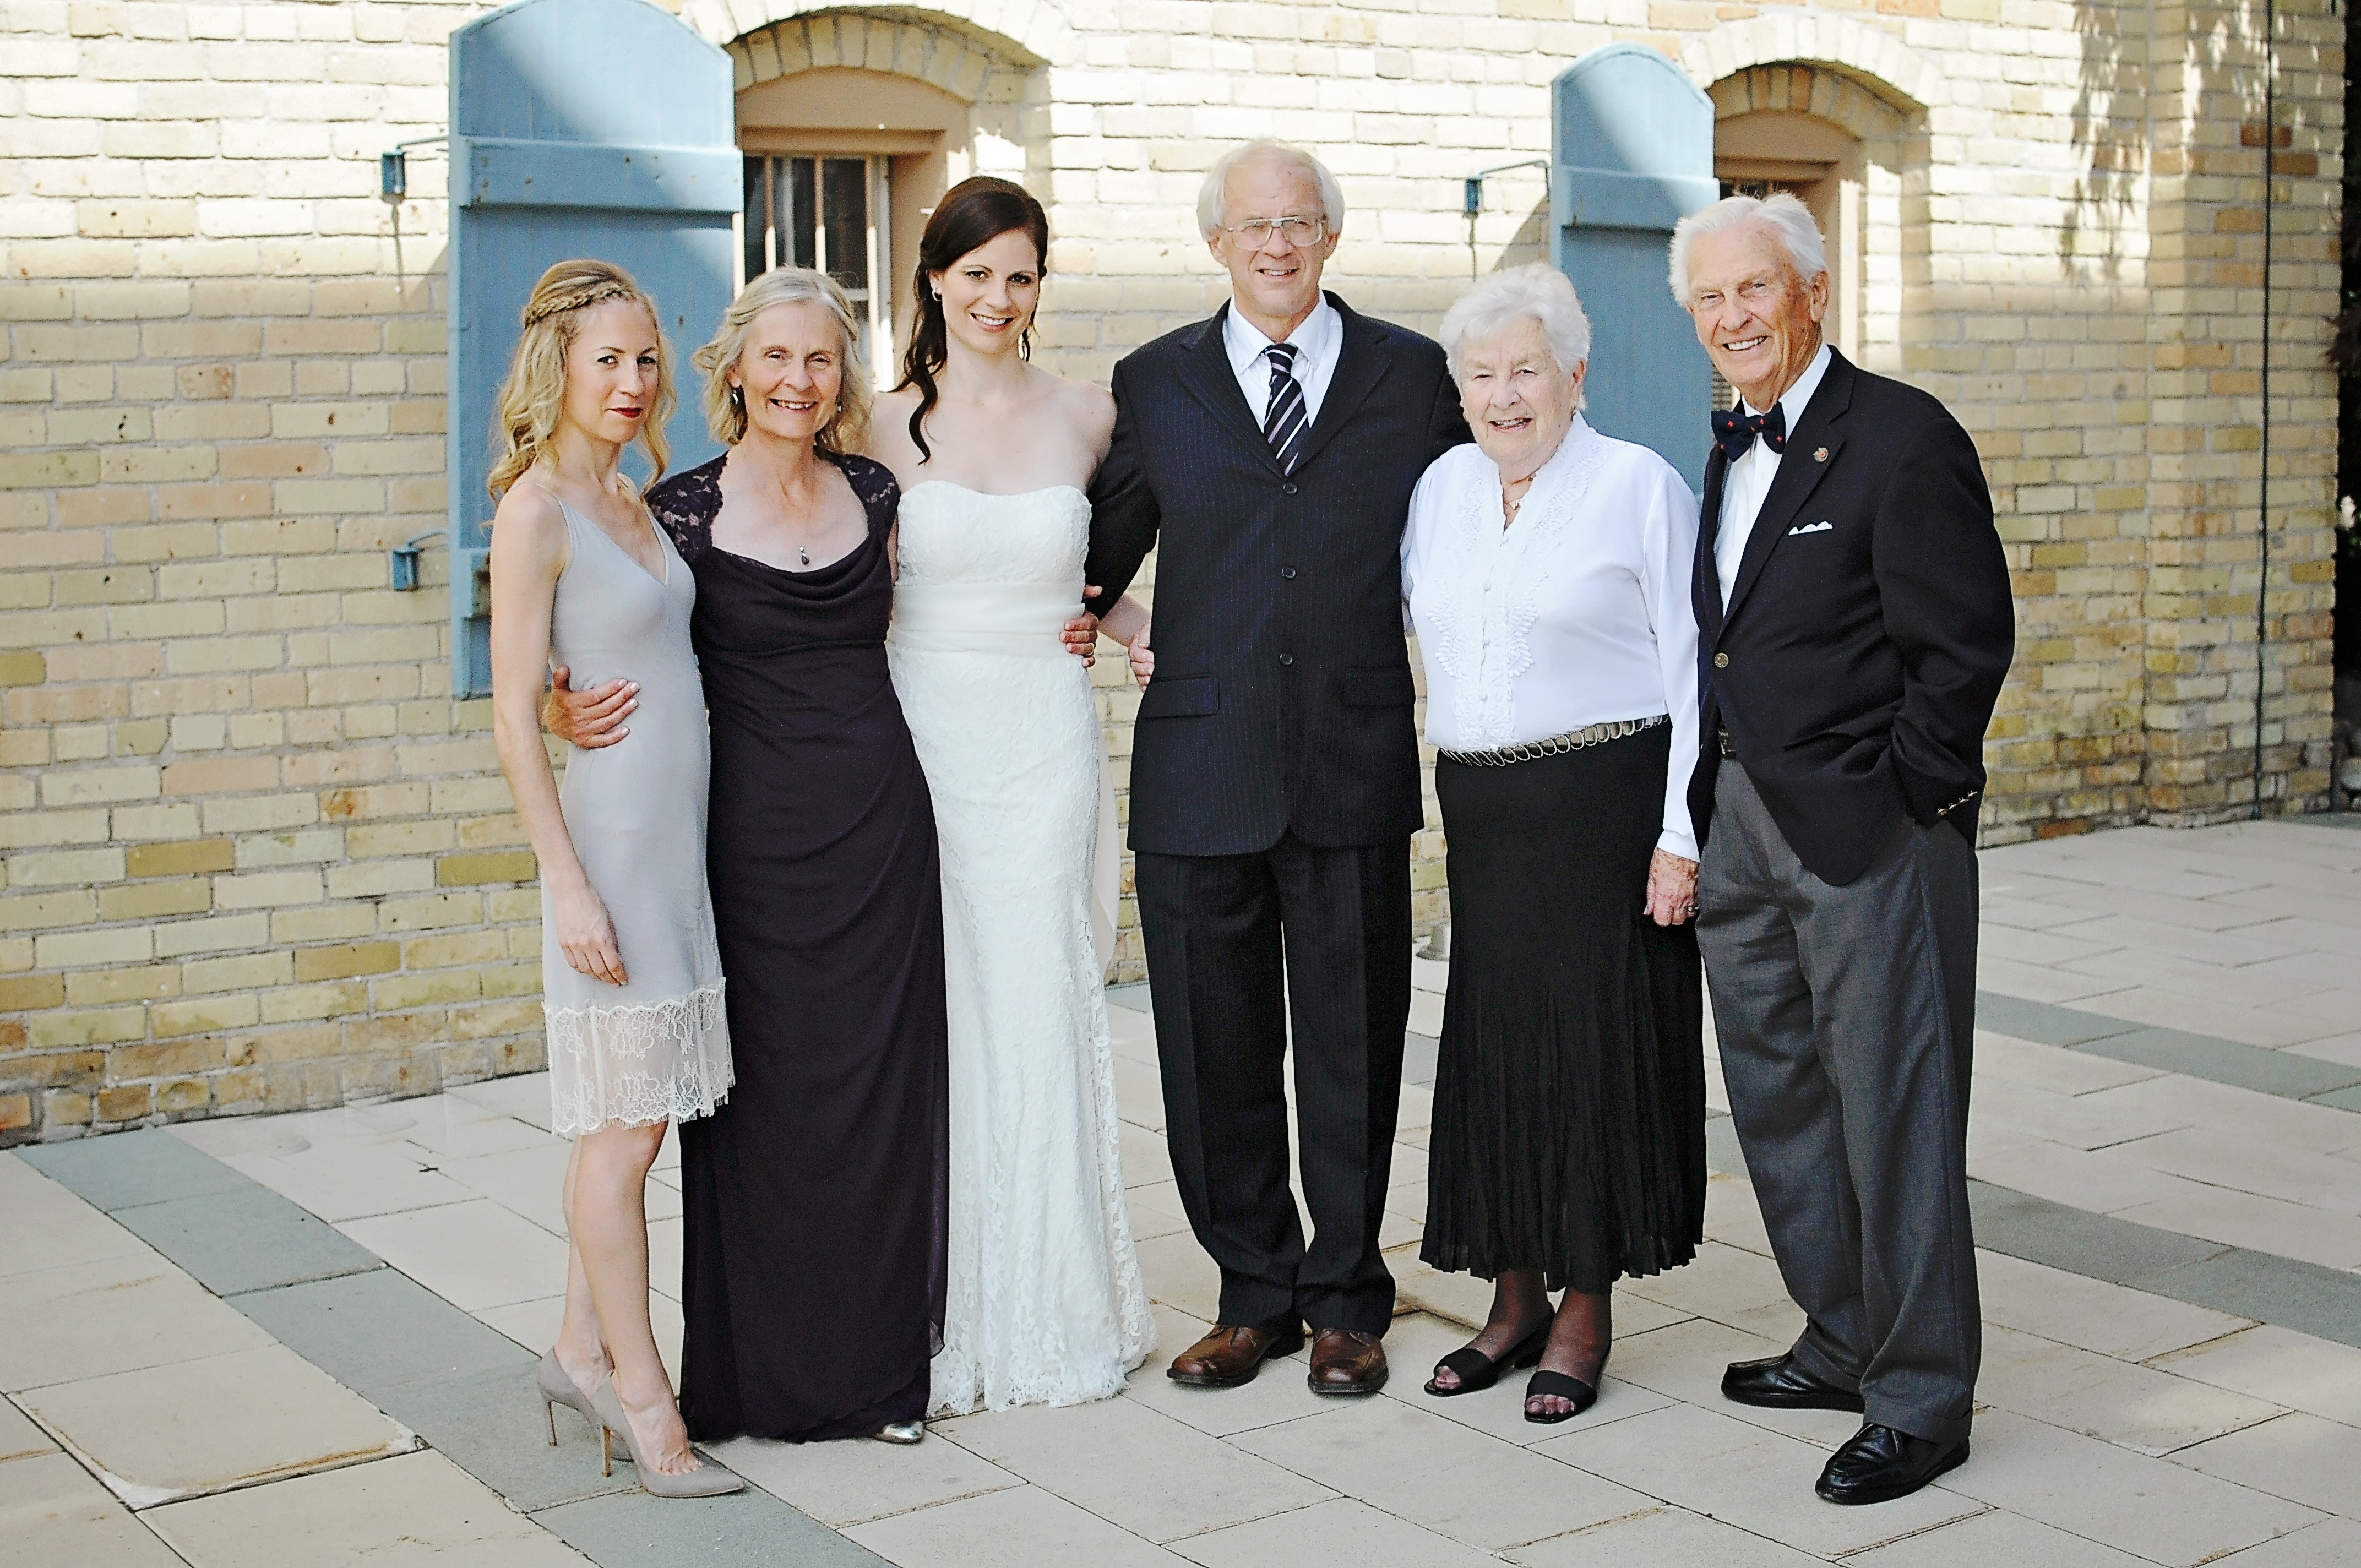 The Whole Family with Dress